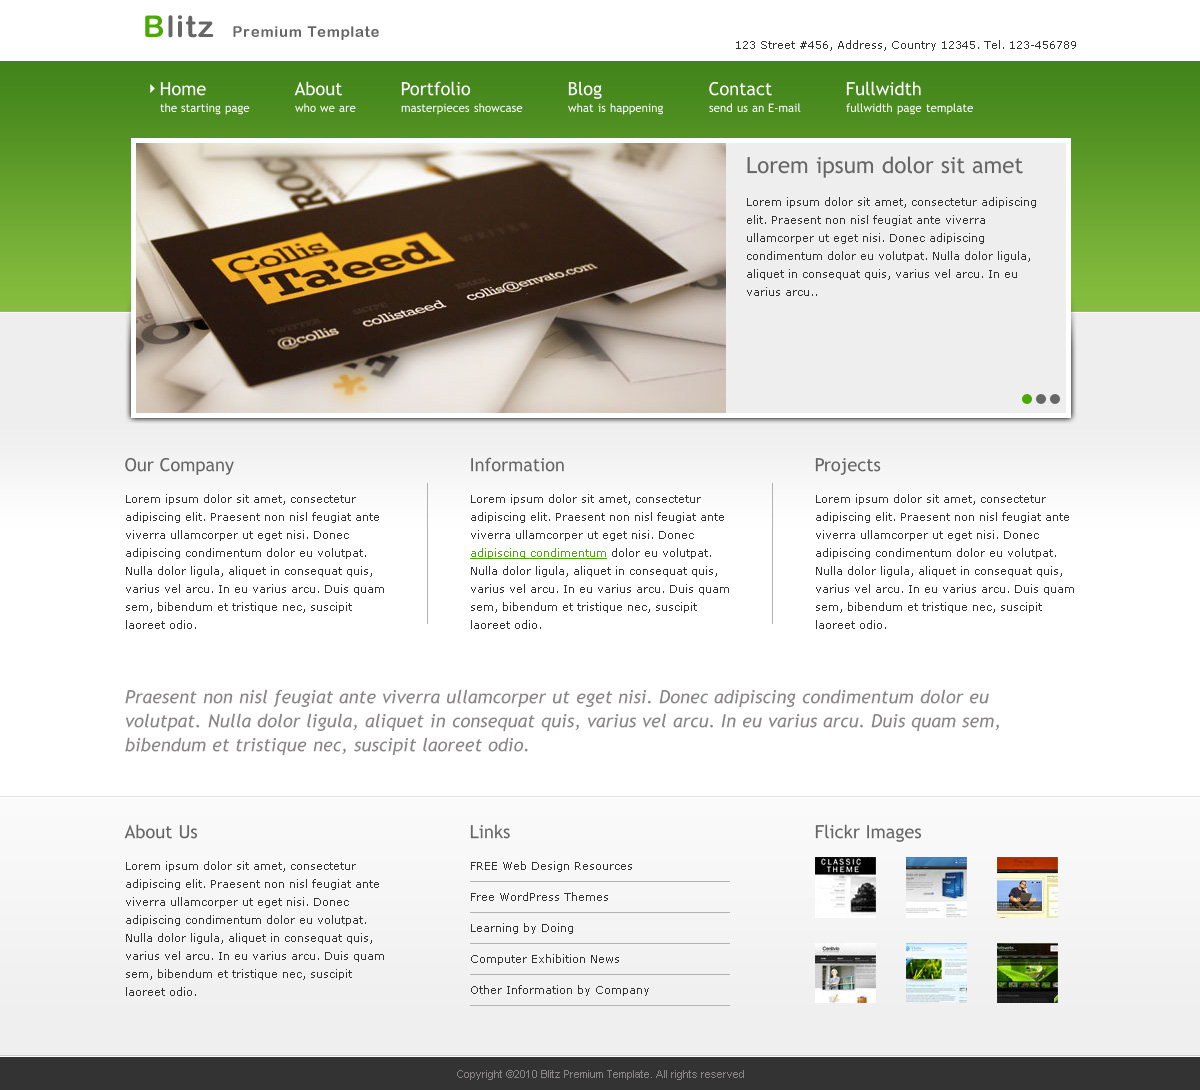 Blitz - Premium Business Template - Clean Design